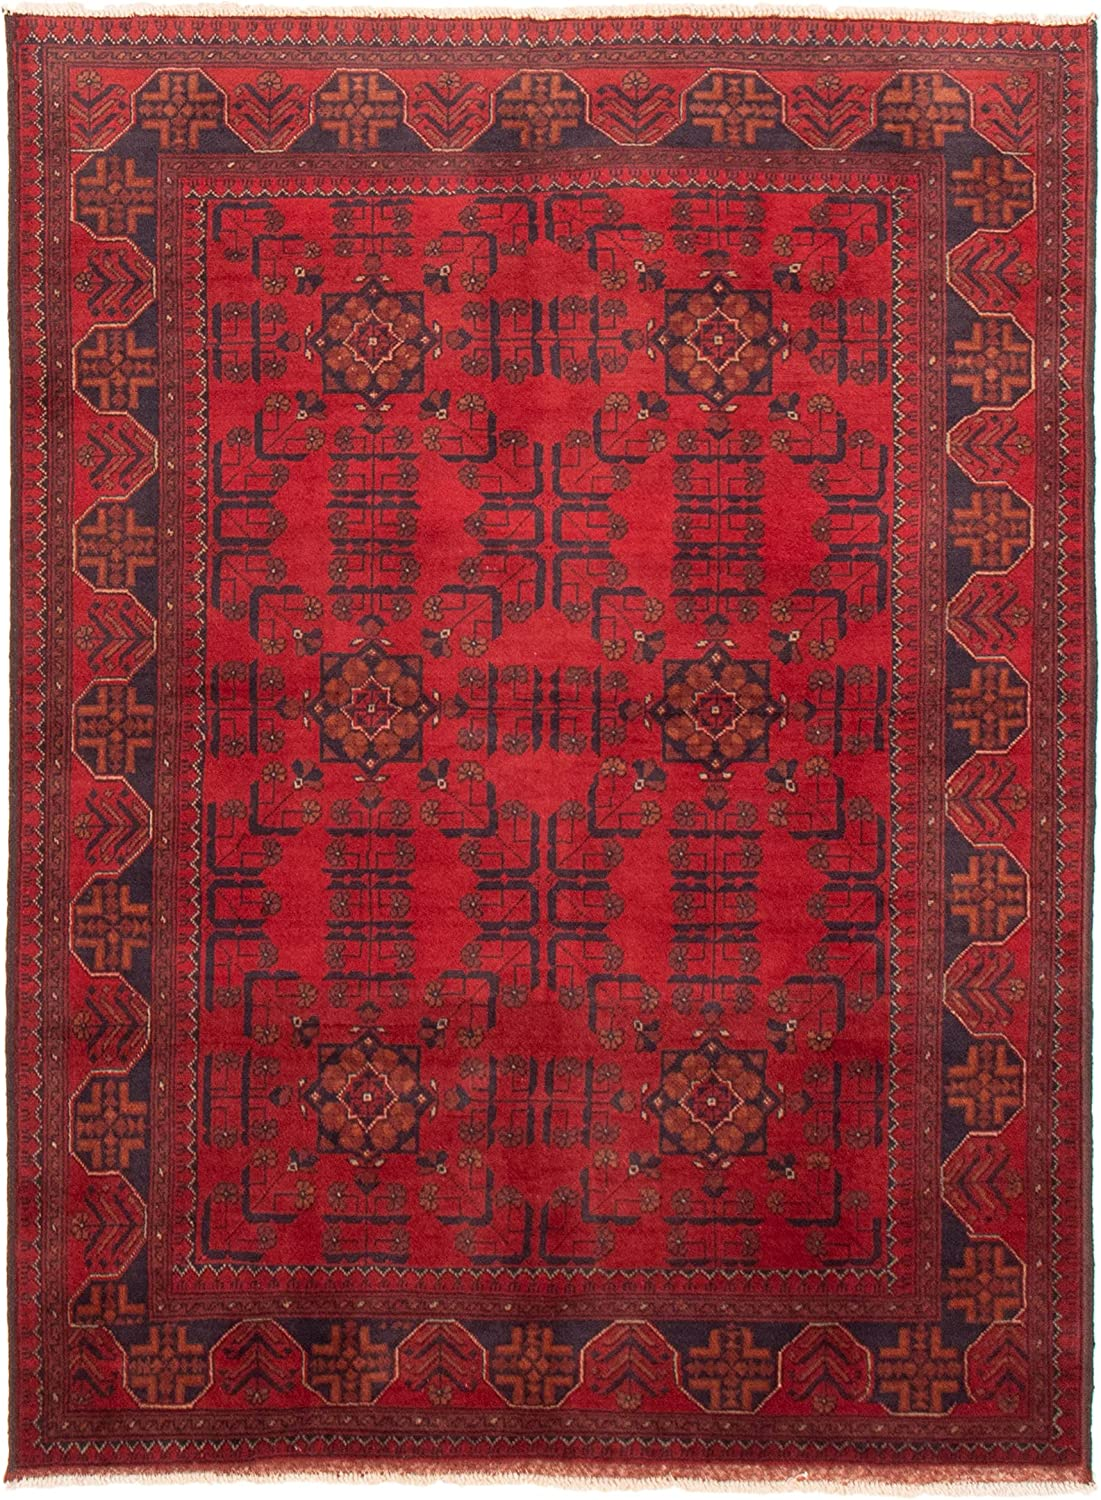 eCarpet Gallery Area Rug Classic for Room Hand-Knotted Living Super beauty product restock quality top! Bedroom